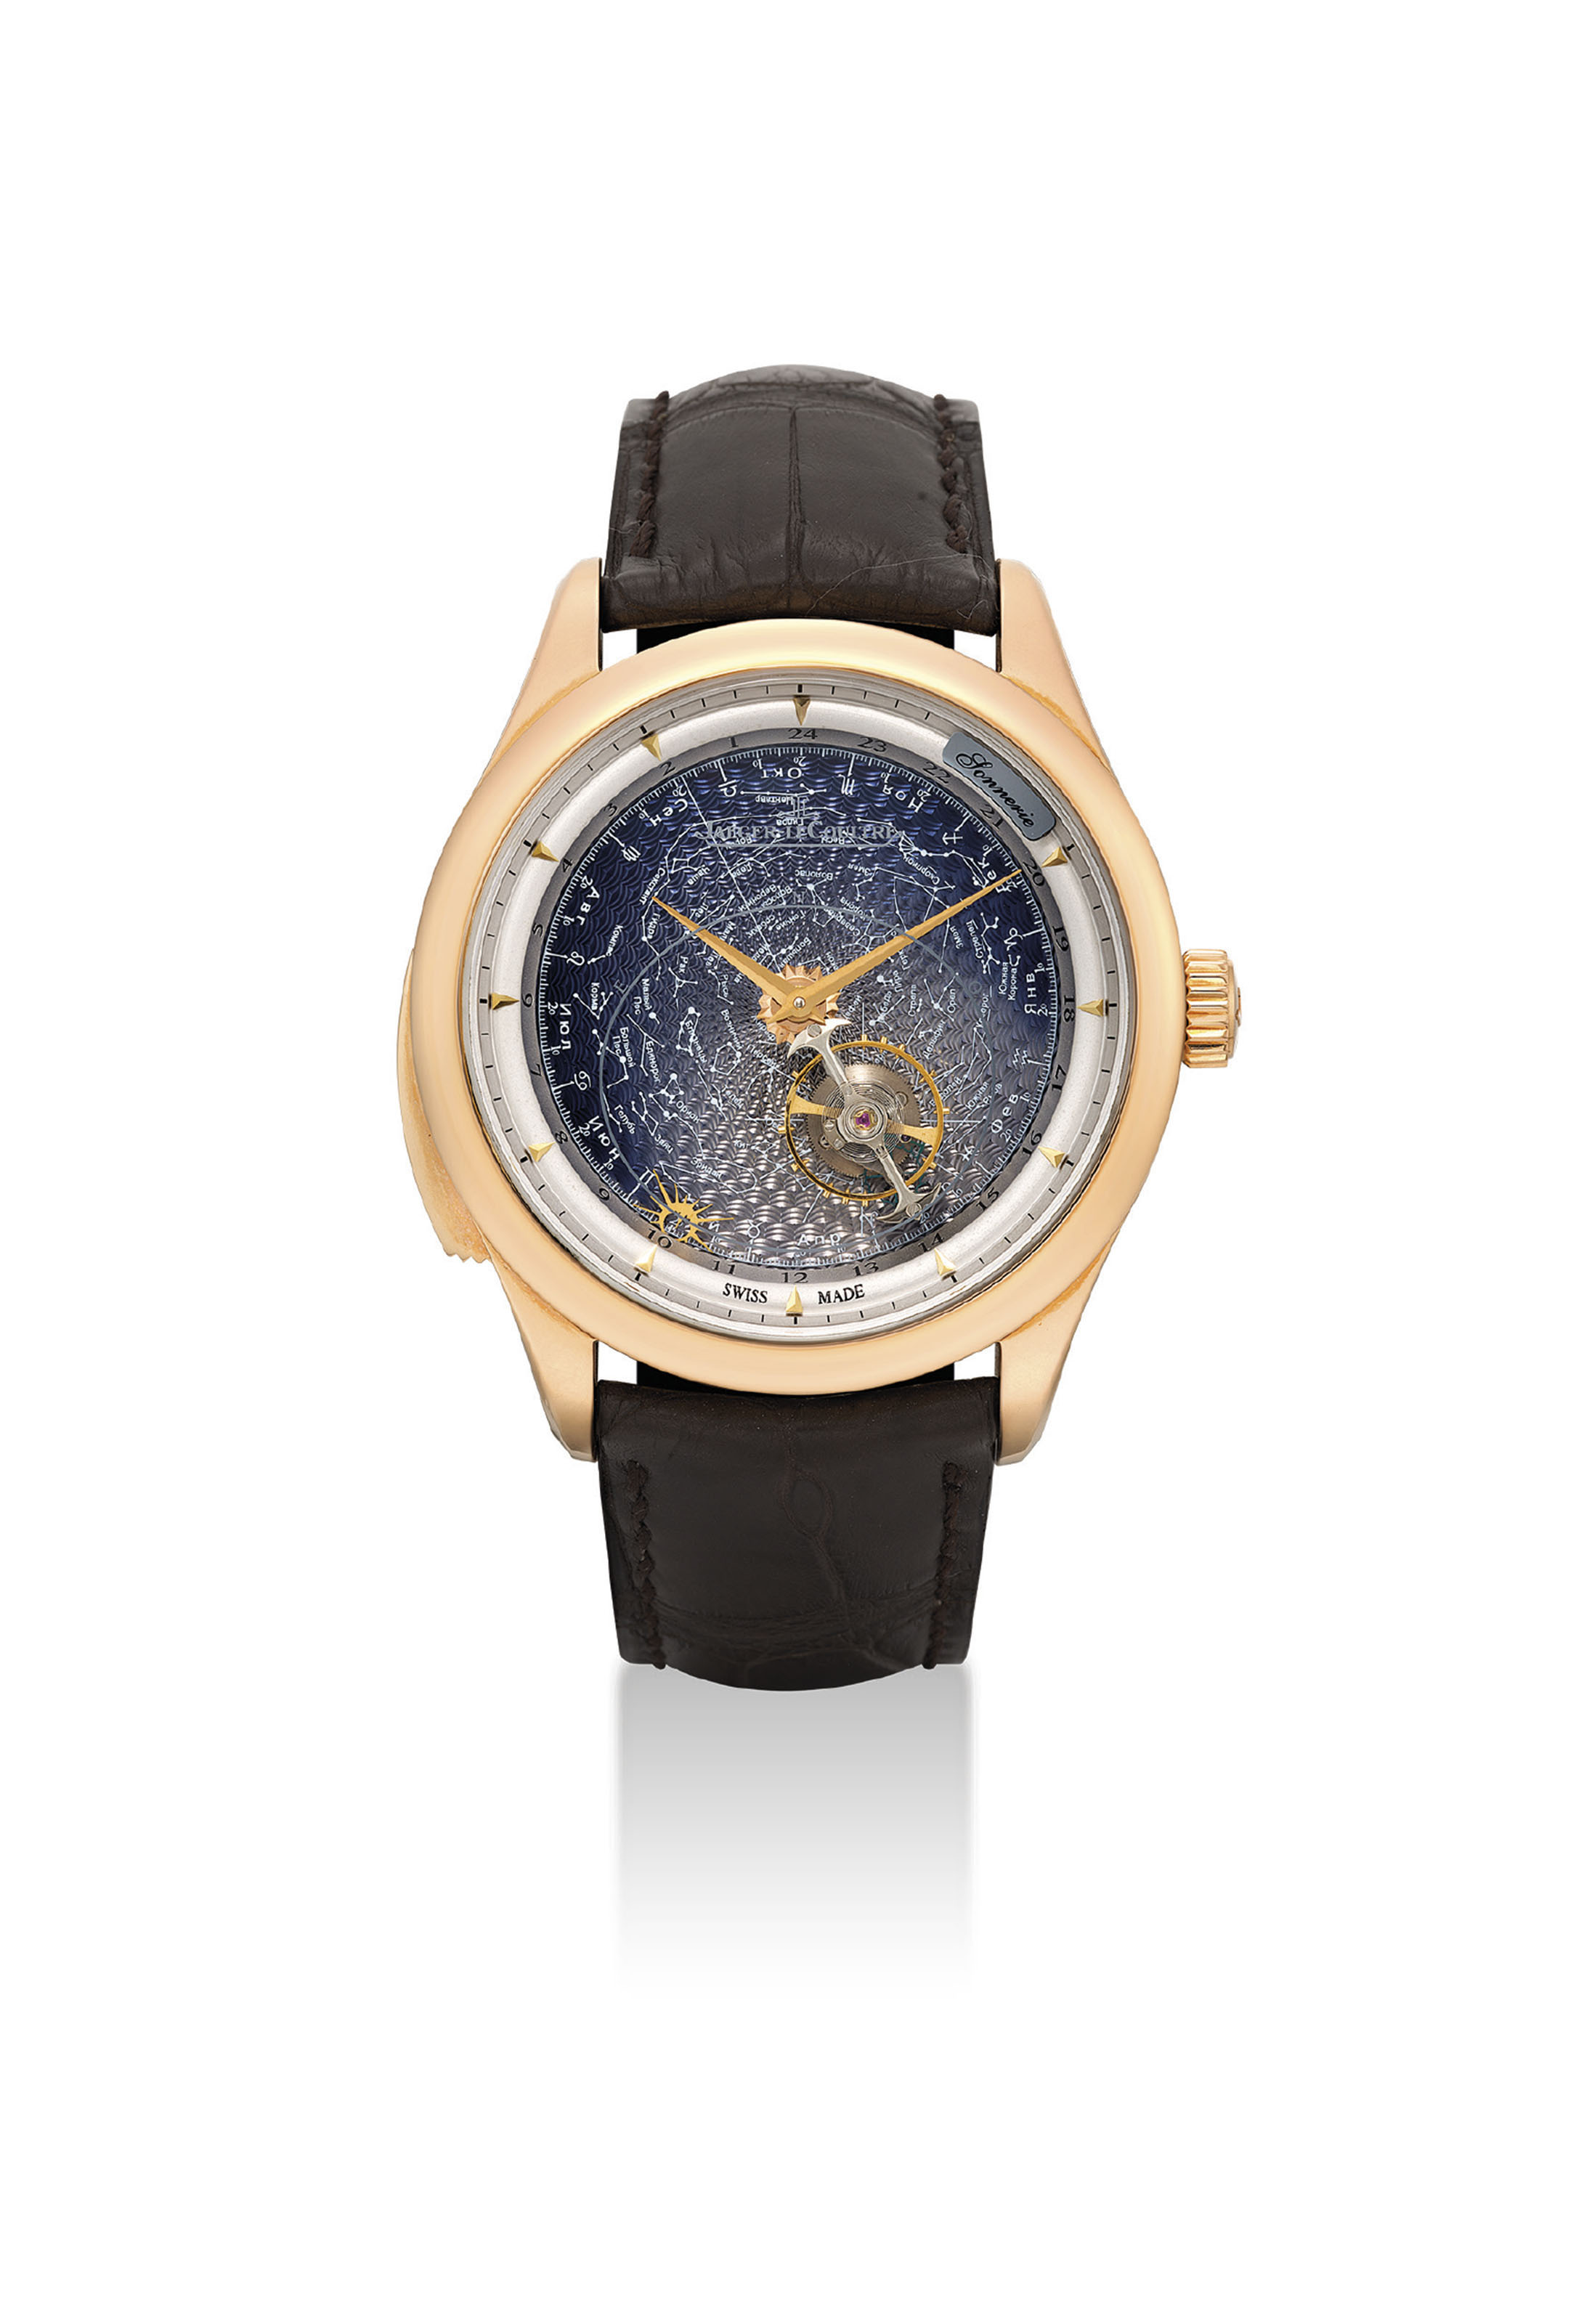 JAEGER-LECOULTRE. AN IMPORTANT, VERY FINE AND VERY RARE 18K PINK GOLD LIMITED EDITION MINUTE REPEATING WRISTWATCH WITH FLYING TOURBILLON, SKY CHART, DATE, MONTH AND 24 HOUR INDICATION, MADE FOR THE RUSSIAN MARKET